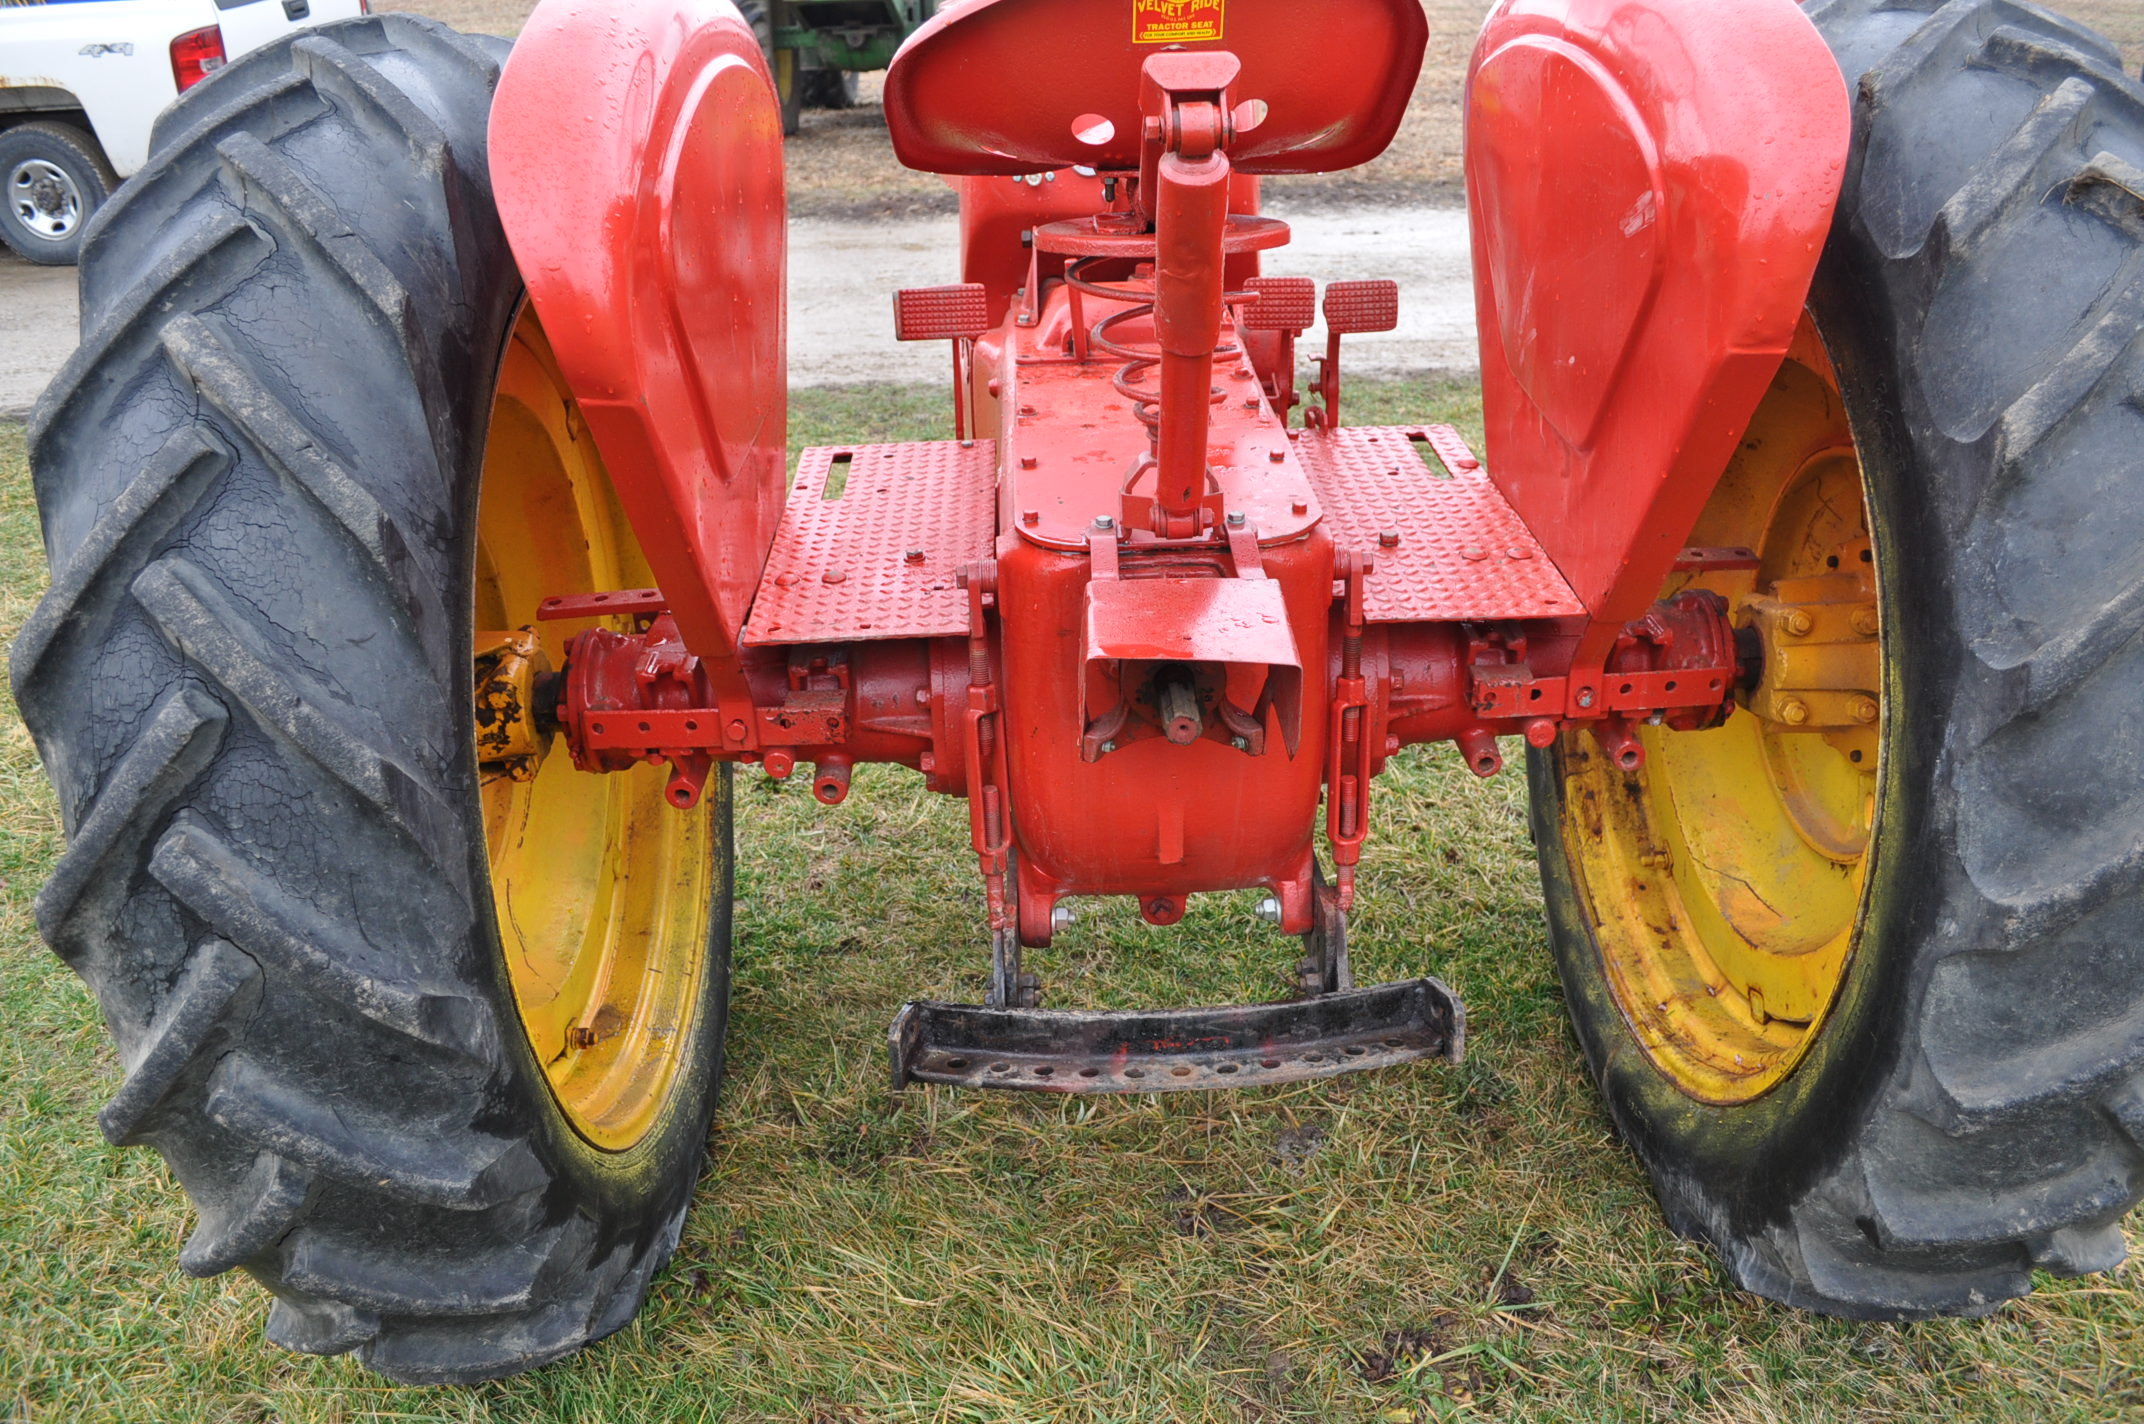 Massey Harris 101 Junior tractor, 12-38 tires, narrow front, 540 pto, SN 501605 - Image 10 of 12